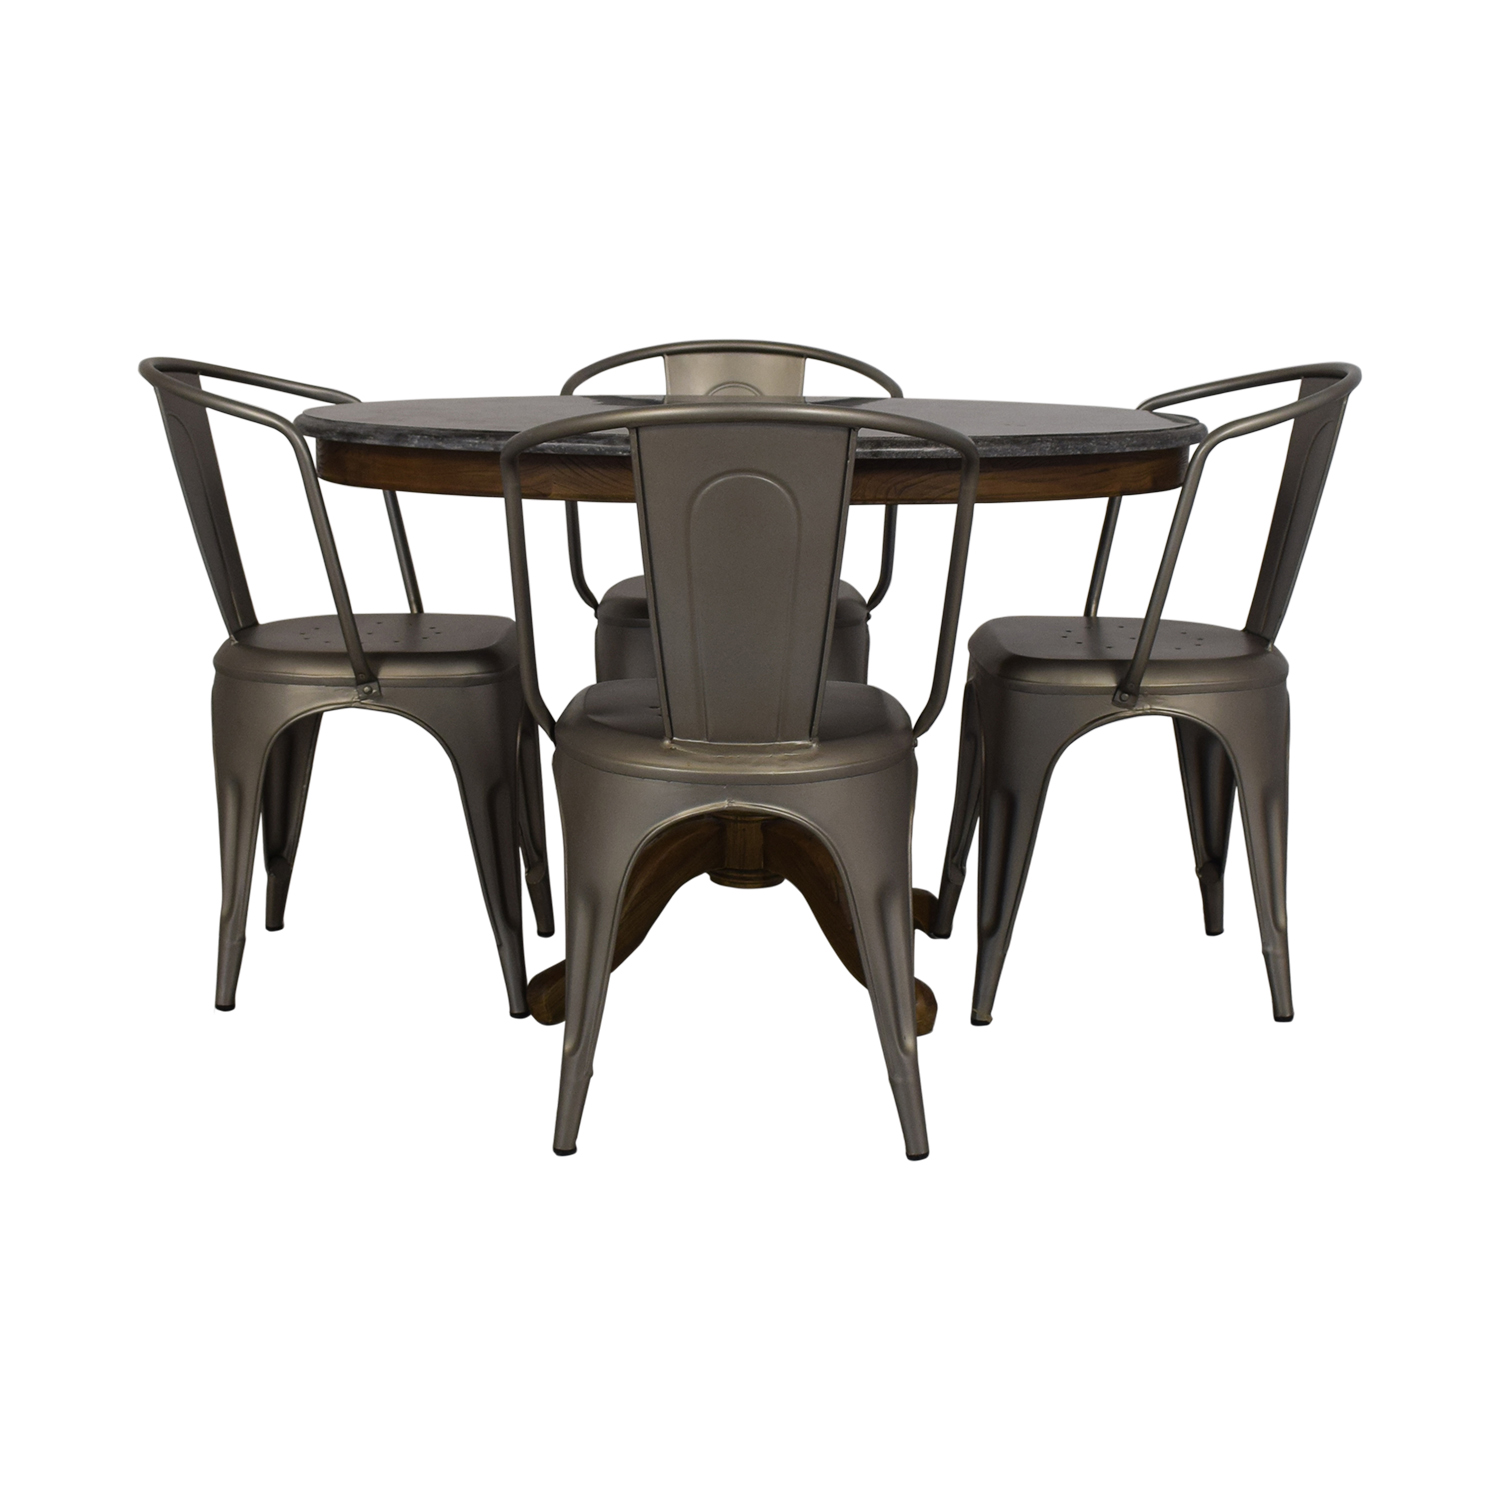 Restoration Hardware Restoration Hardware Bluestone Dining Table And Remy Chairs used